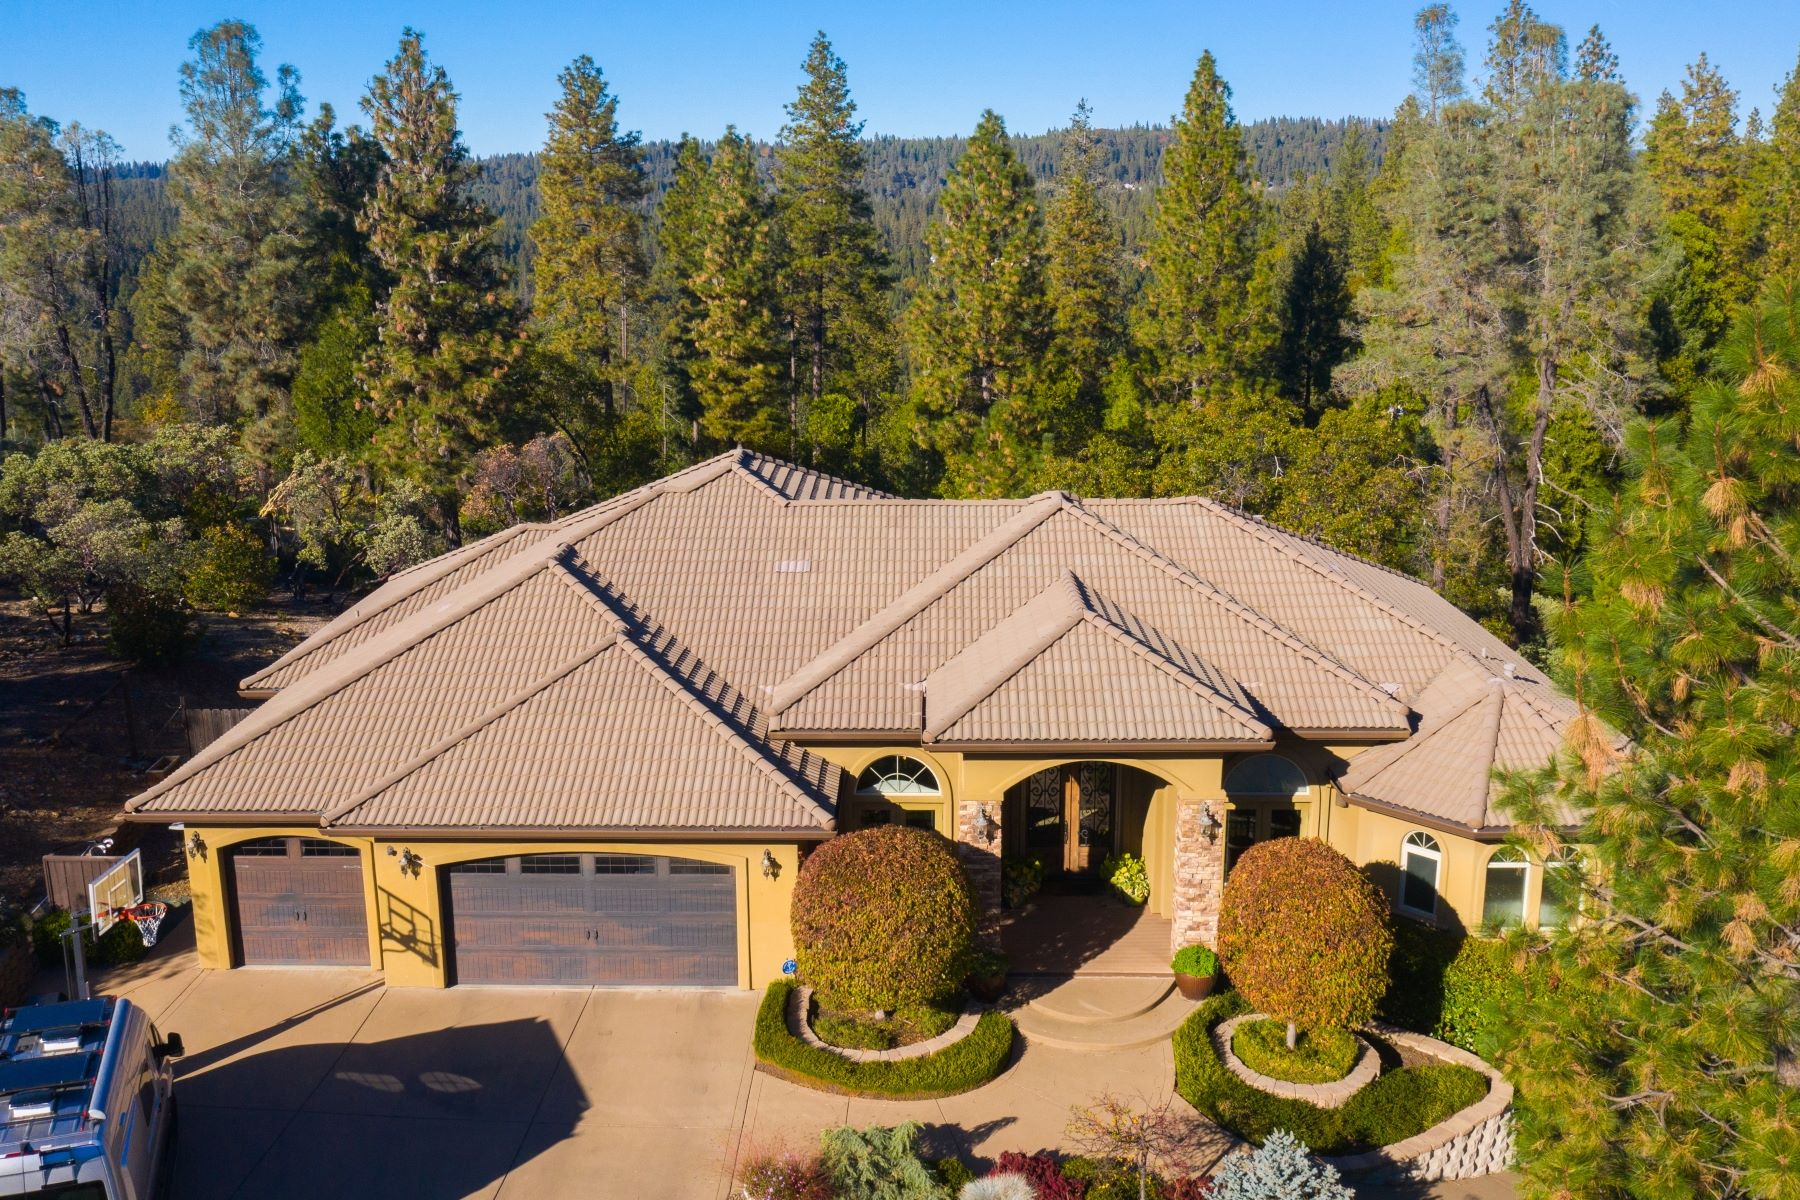 Additional photo for property listing at 11492 Deer Creek Ln, Nevada City, CA 95959 11492 Deer Creek Lane Nevada City, California 95959 United States